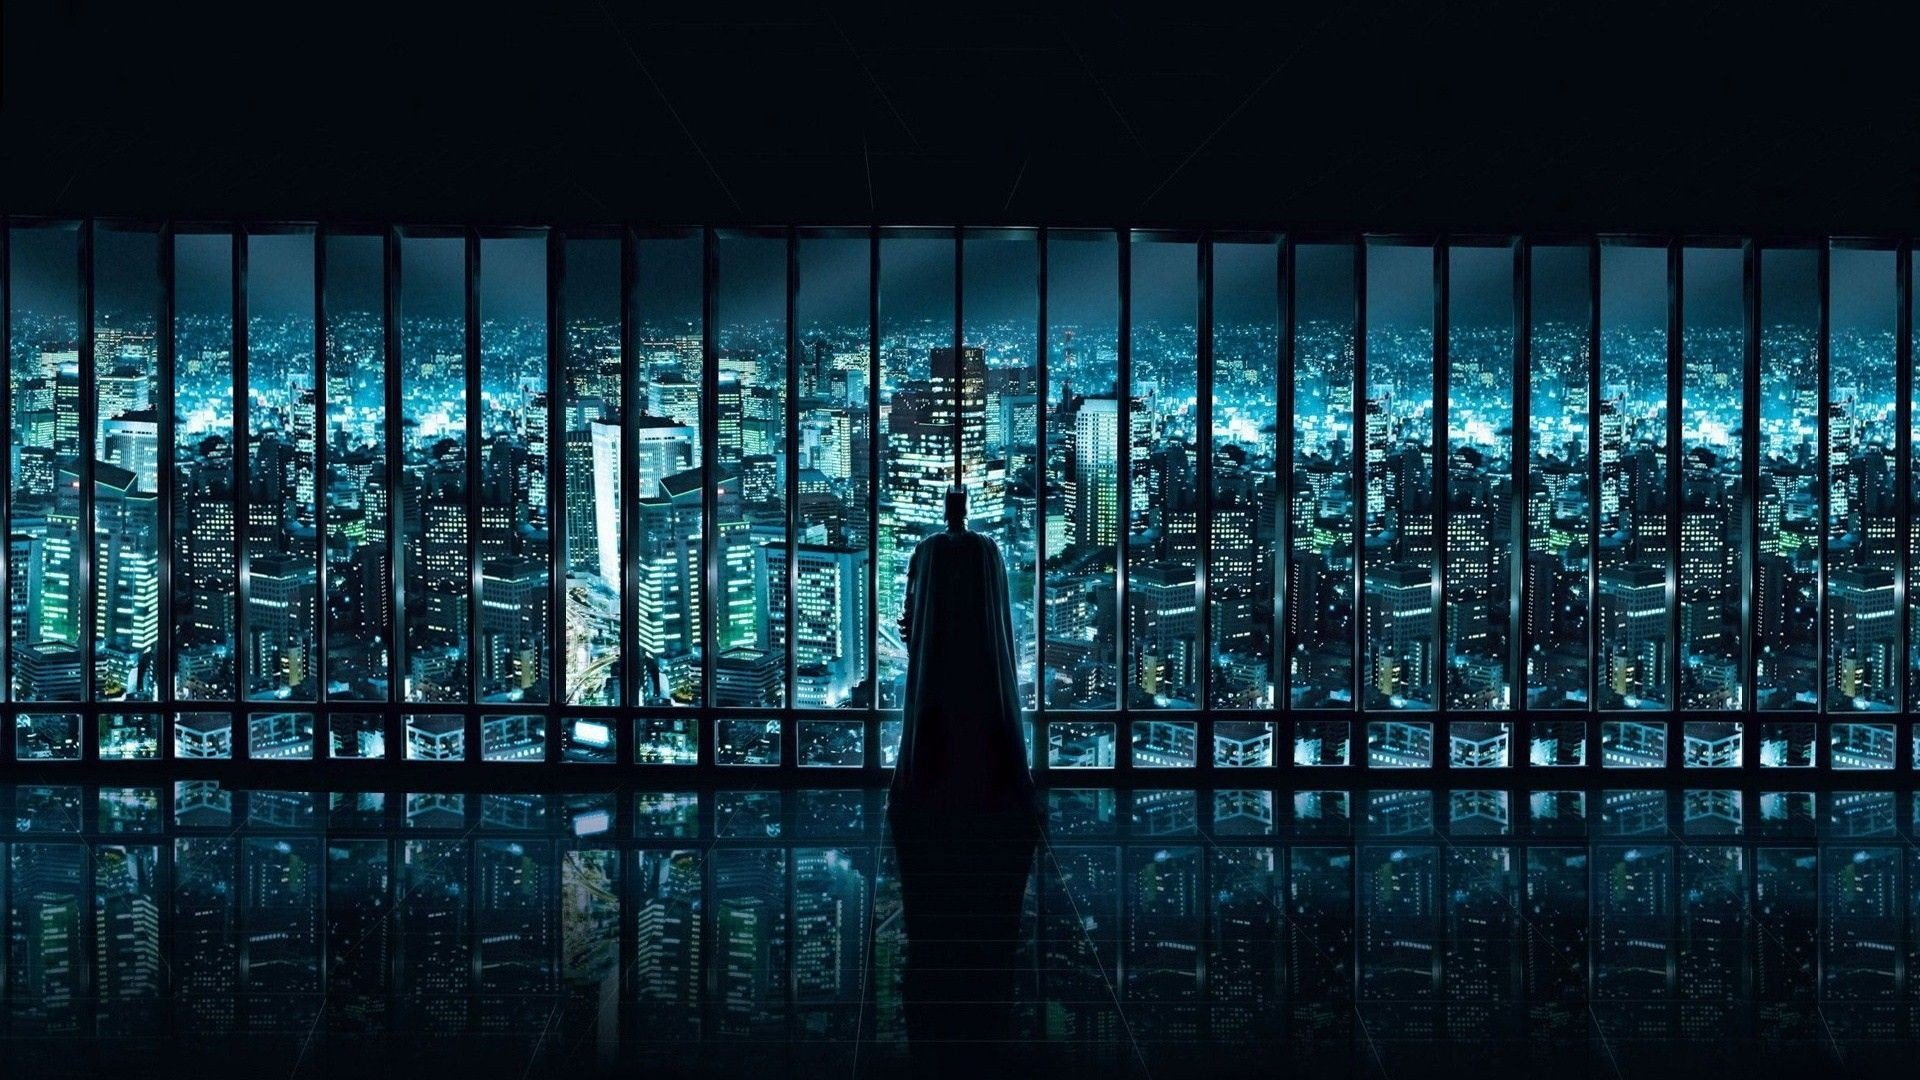 1080p Movie Backgrounds HD Desktop Wallpapers Cool Images HD 1920x1080